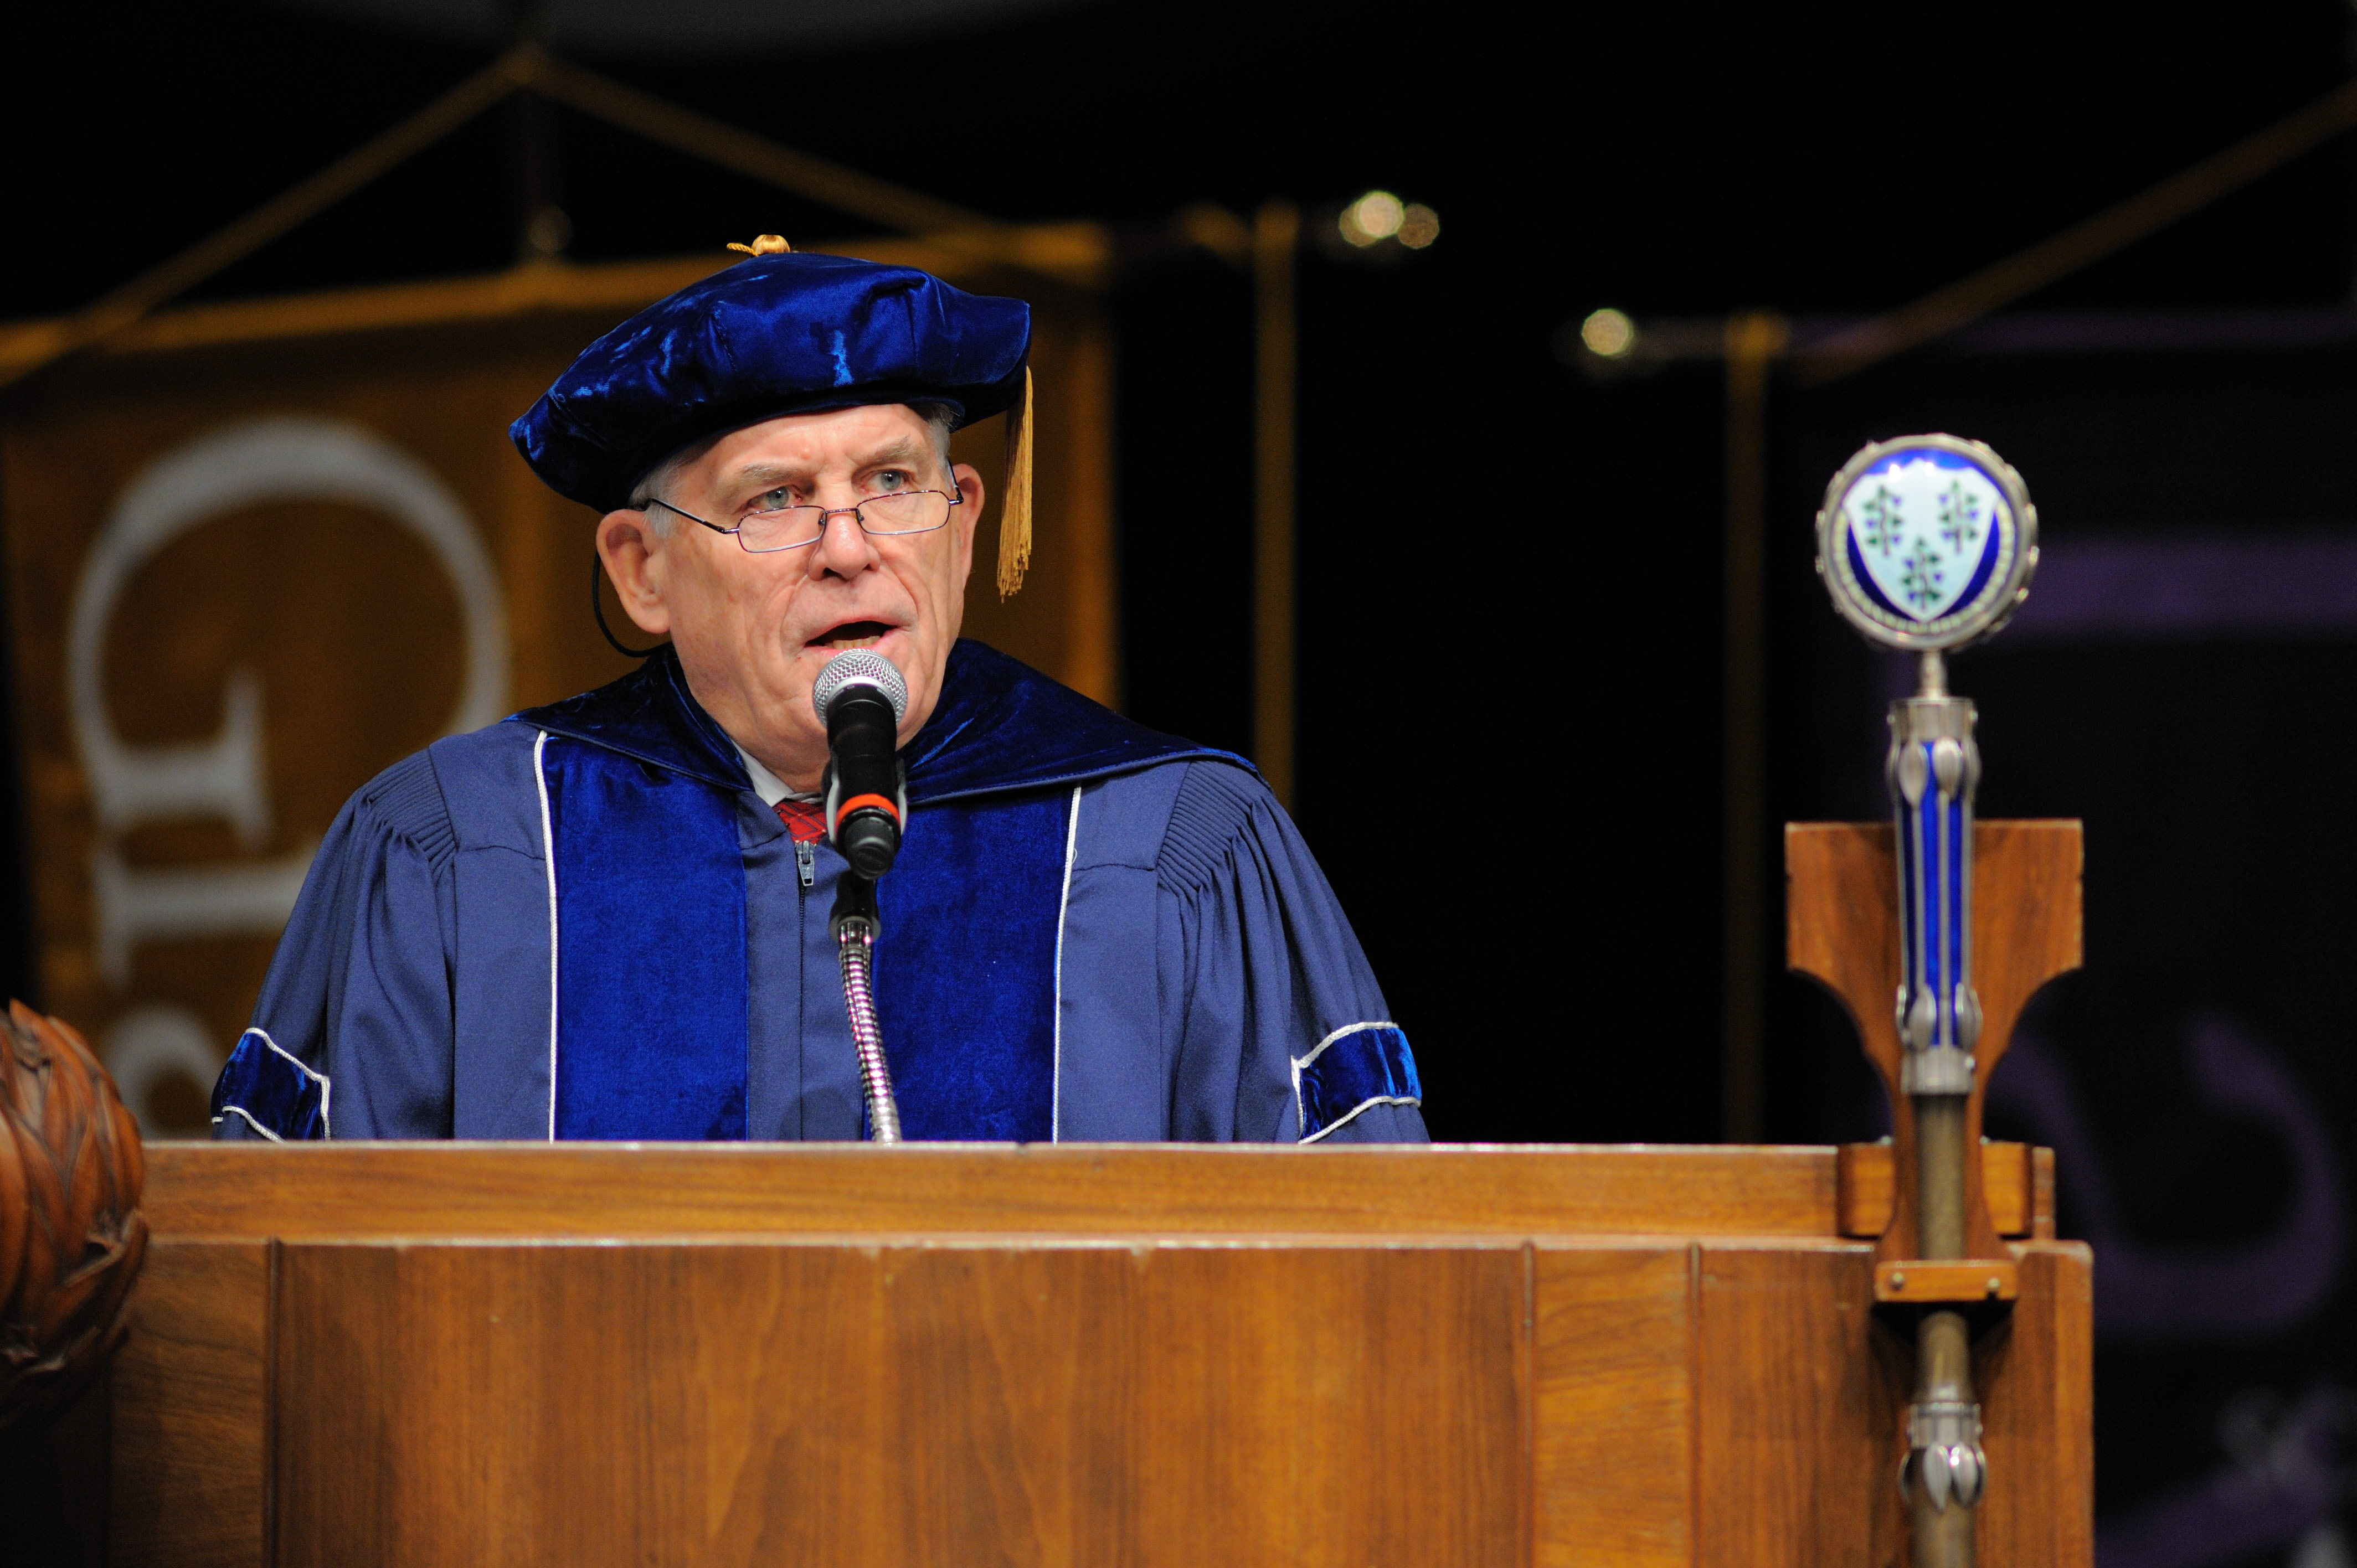 After eight years serving as chair of UConn's Board of Trustees during a period of growth and success, Larry McHugh will step down at the end of his current term. He will continue to serve, however, until Gov. Malloy nominates a successor. In this file photo, McHugh speaks at the inauguration ceremony for President Susan Herbst in September 2011. (Peter Morenus/UConn Photo)